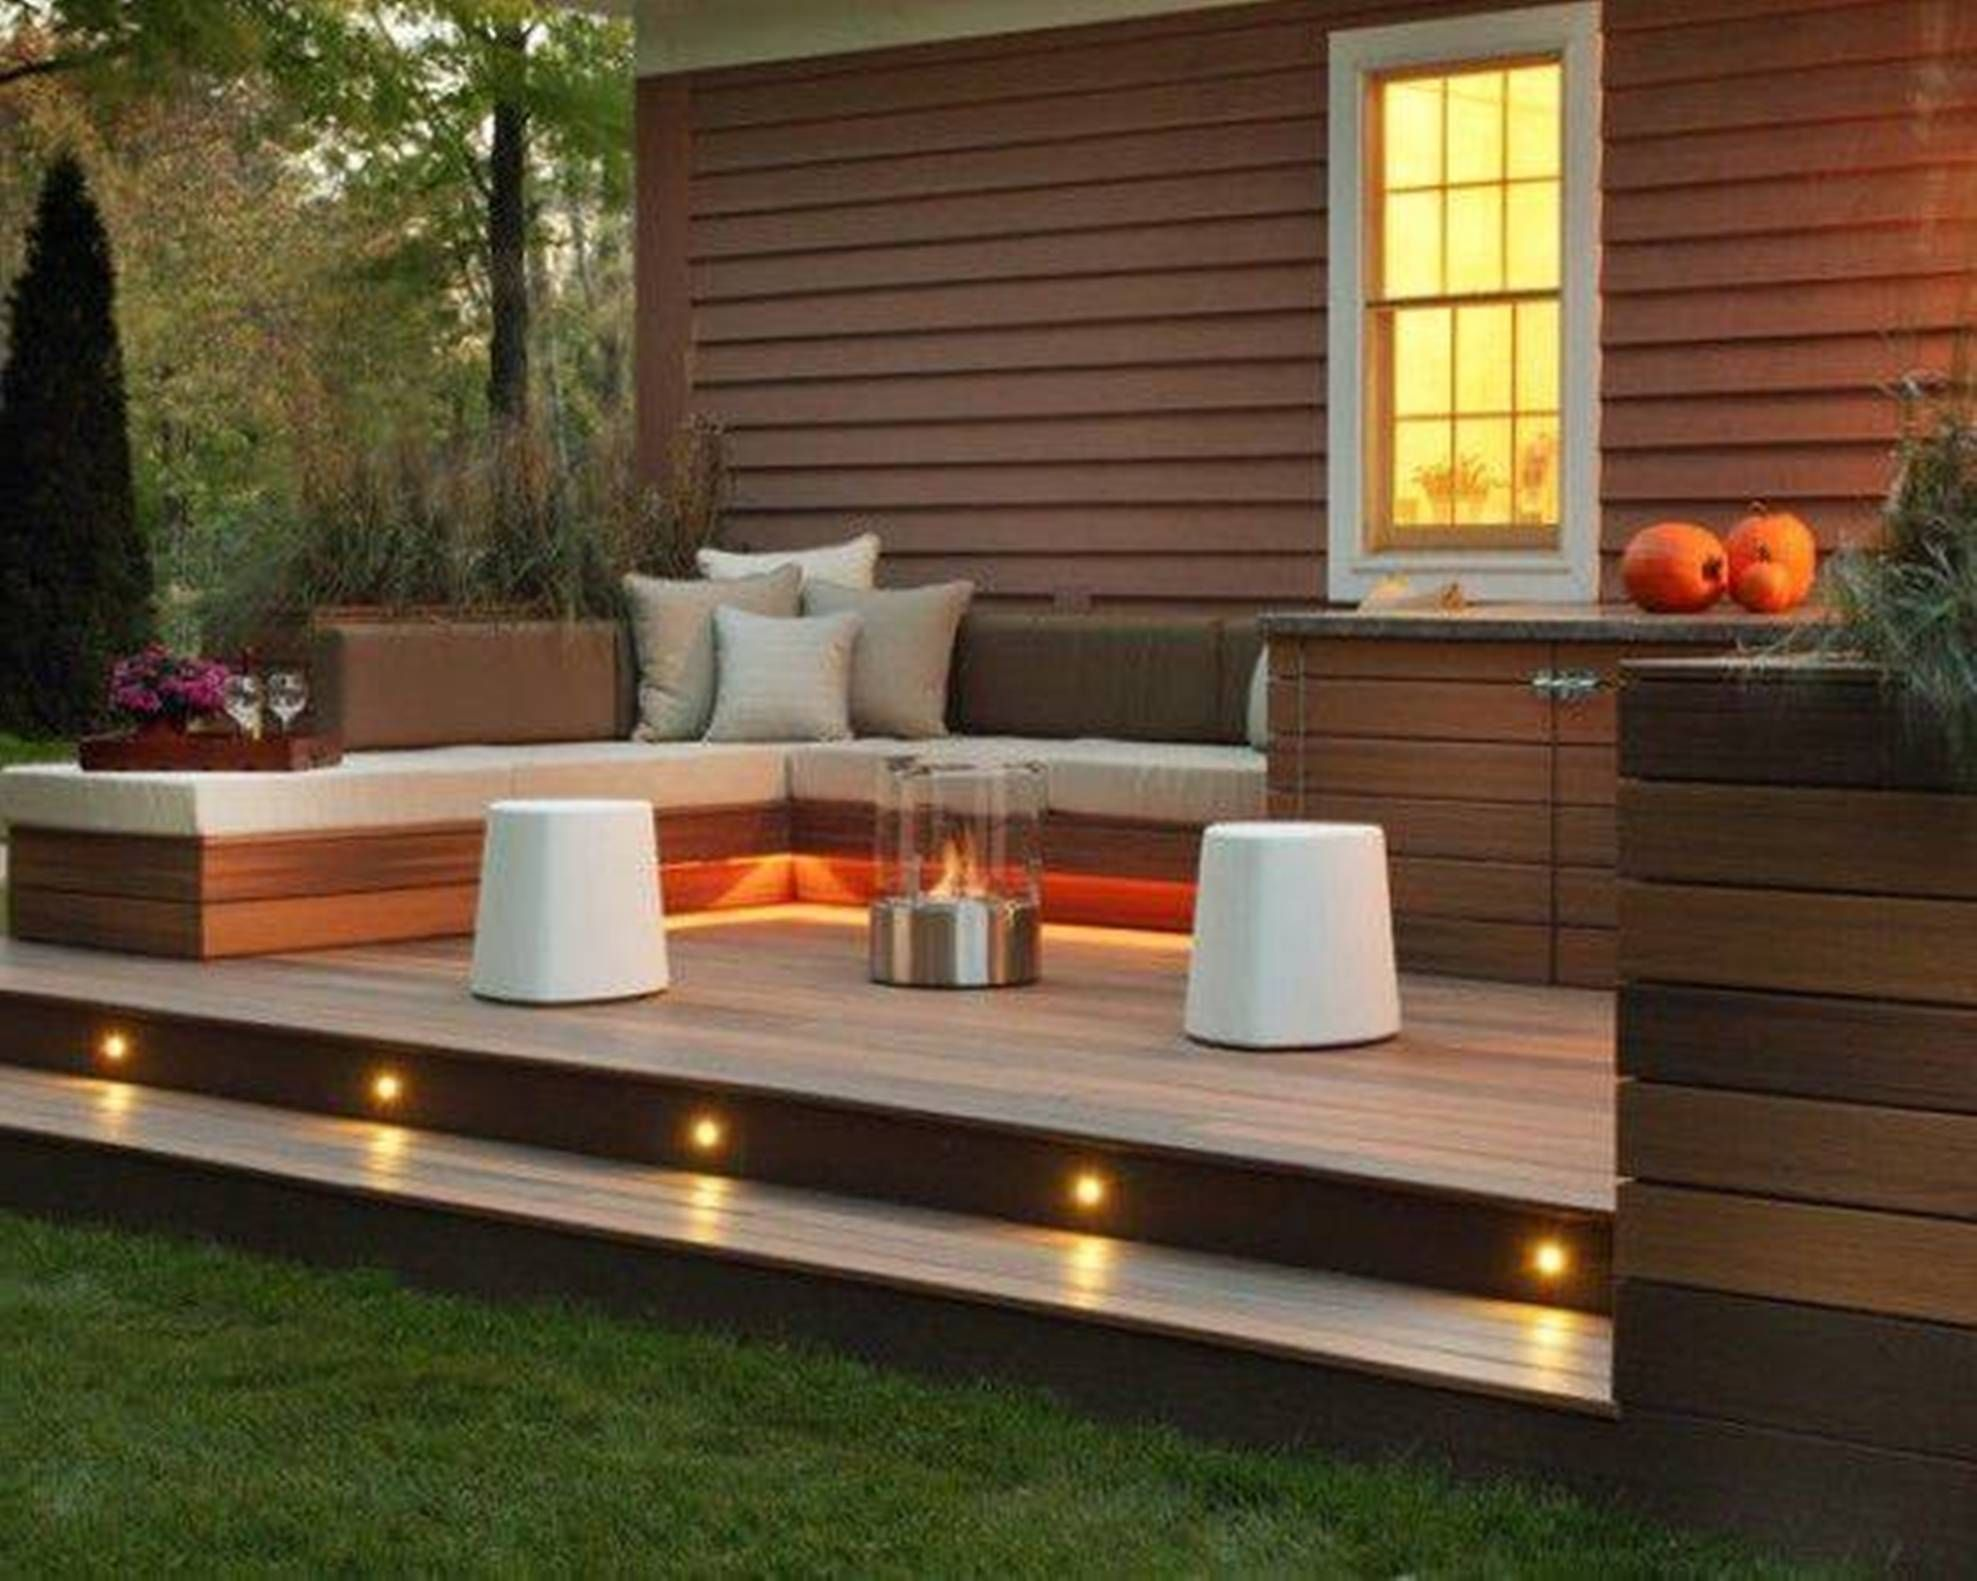 Deck Lights Small Front Garden Ideas On A Budget Decking Designs